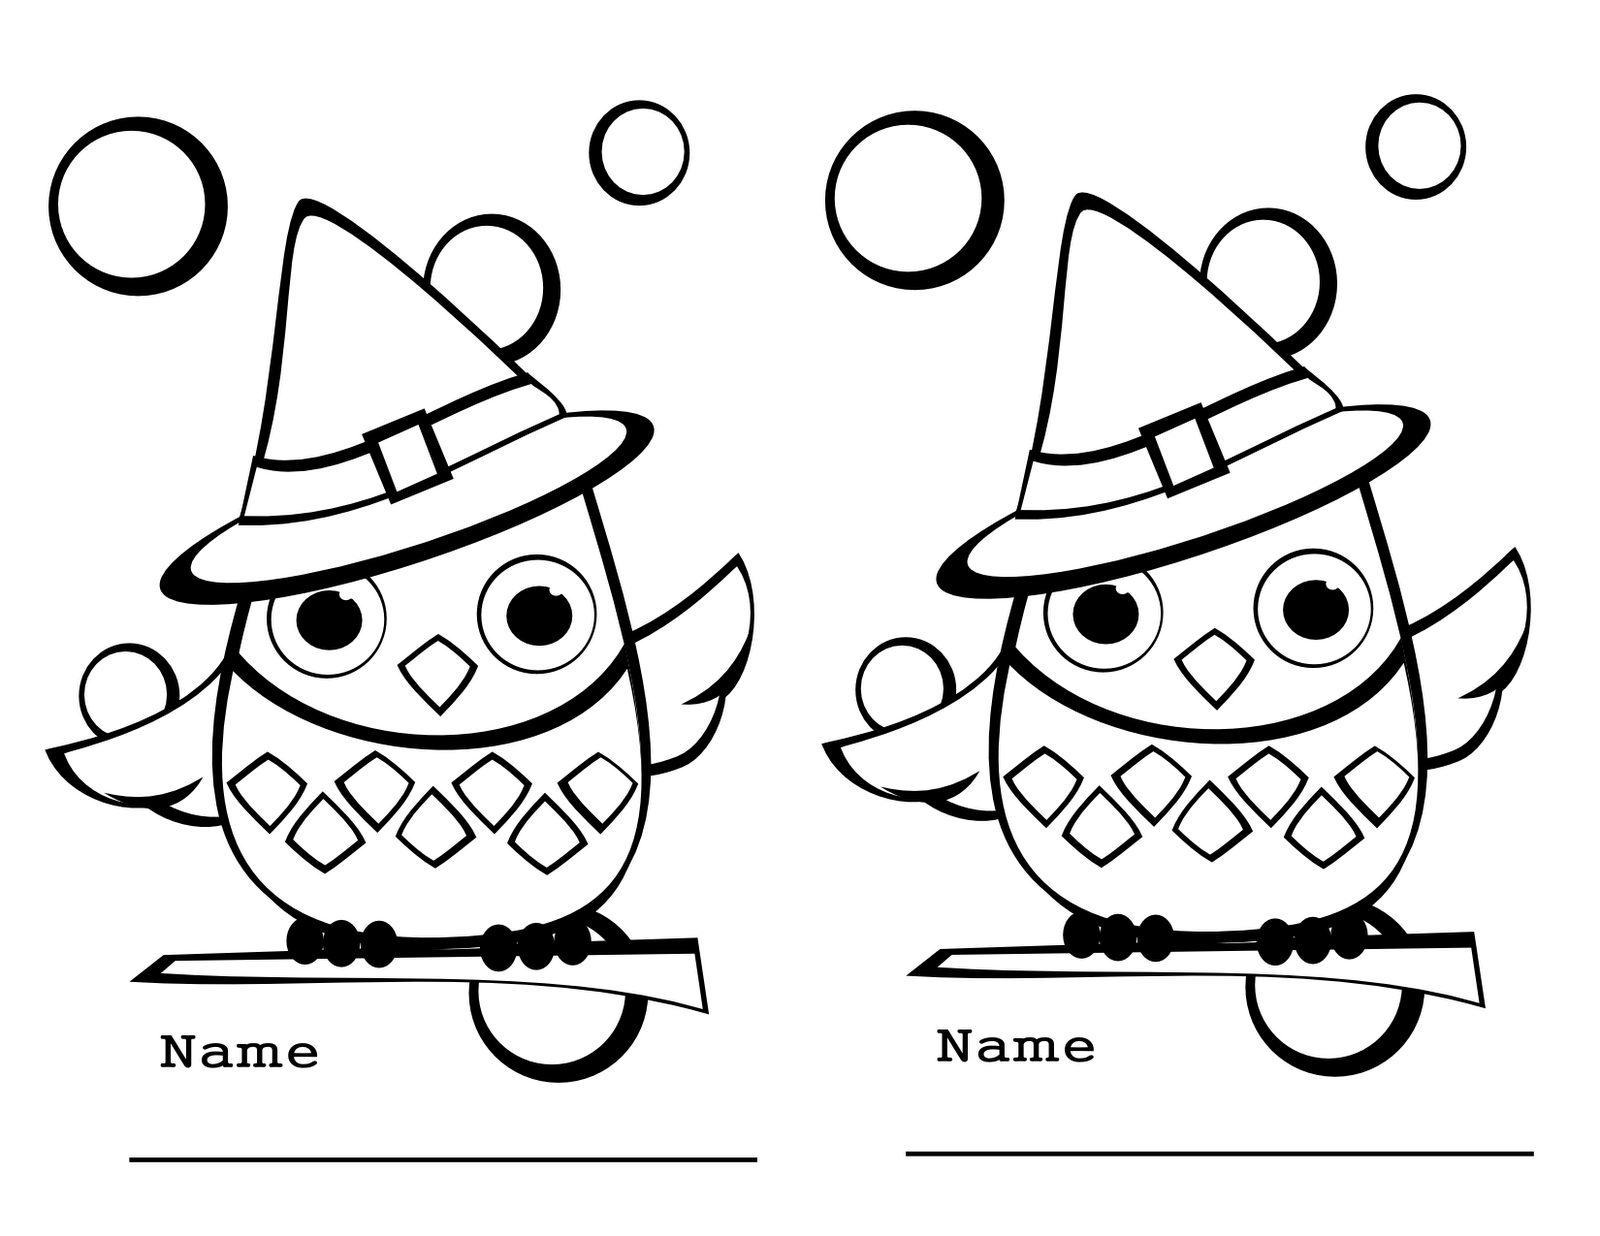 coloring pages of cute owls - photo#22